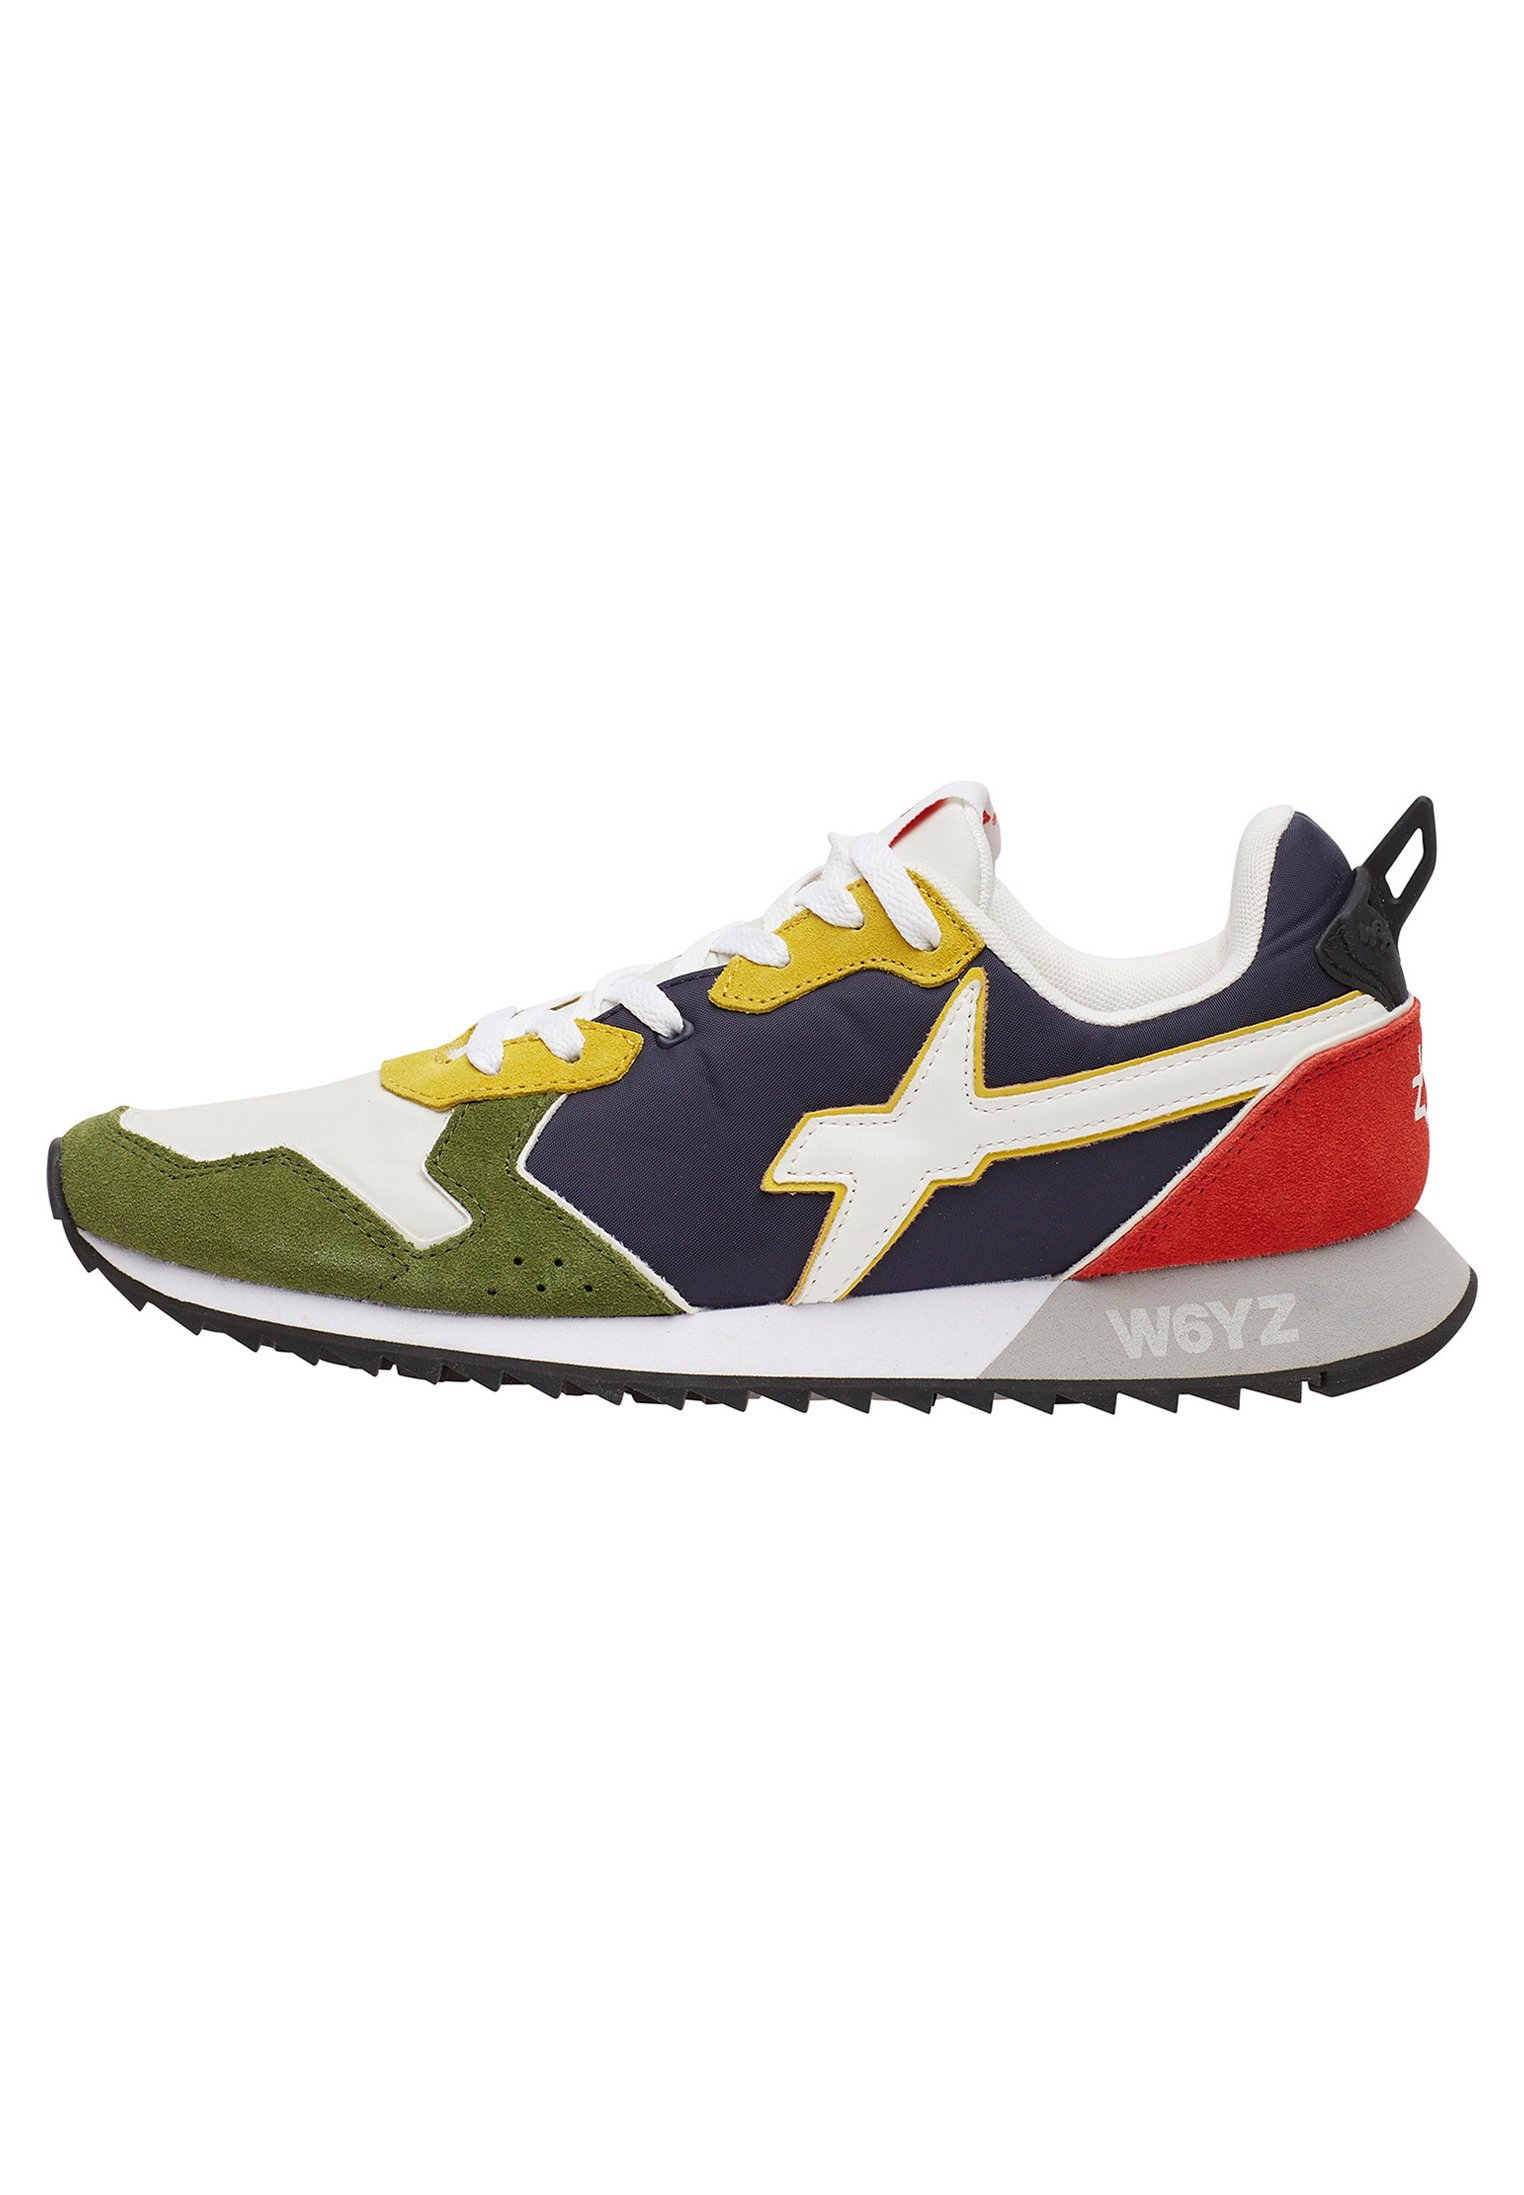 W6YZ JET-M - Trainers - gold/military green